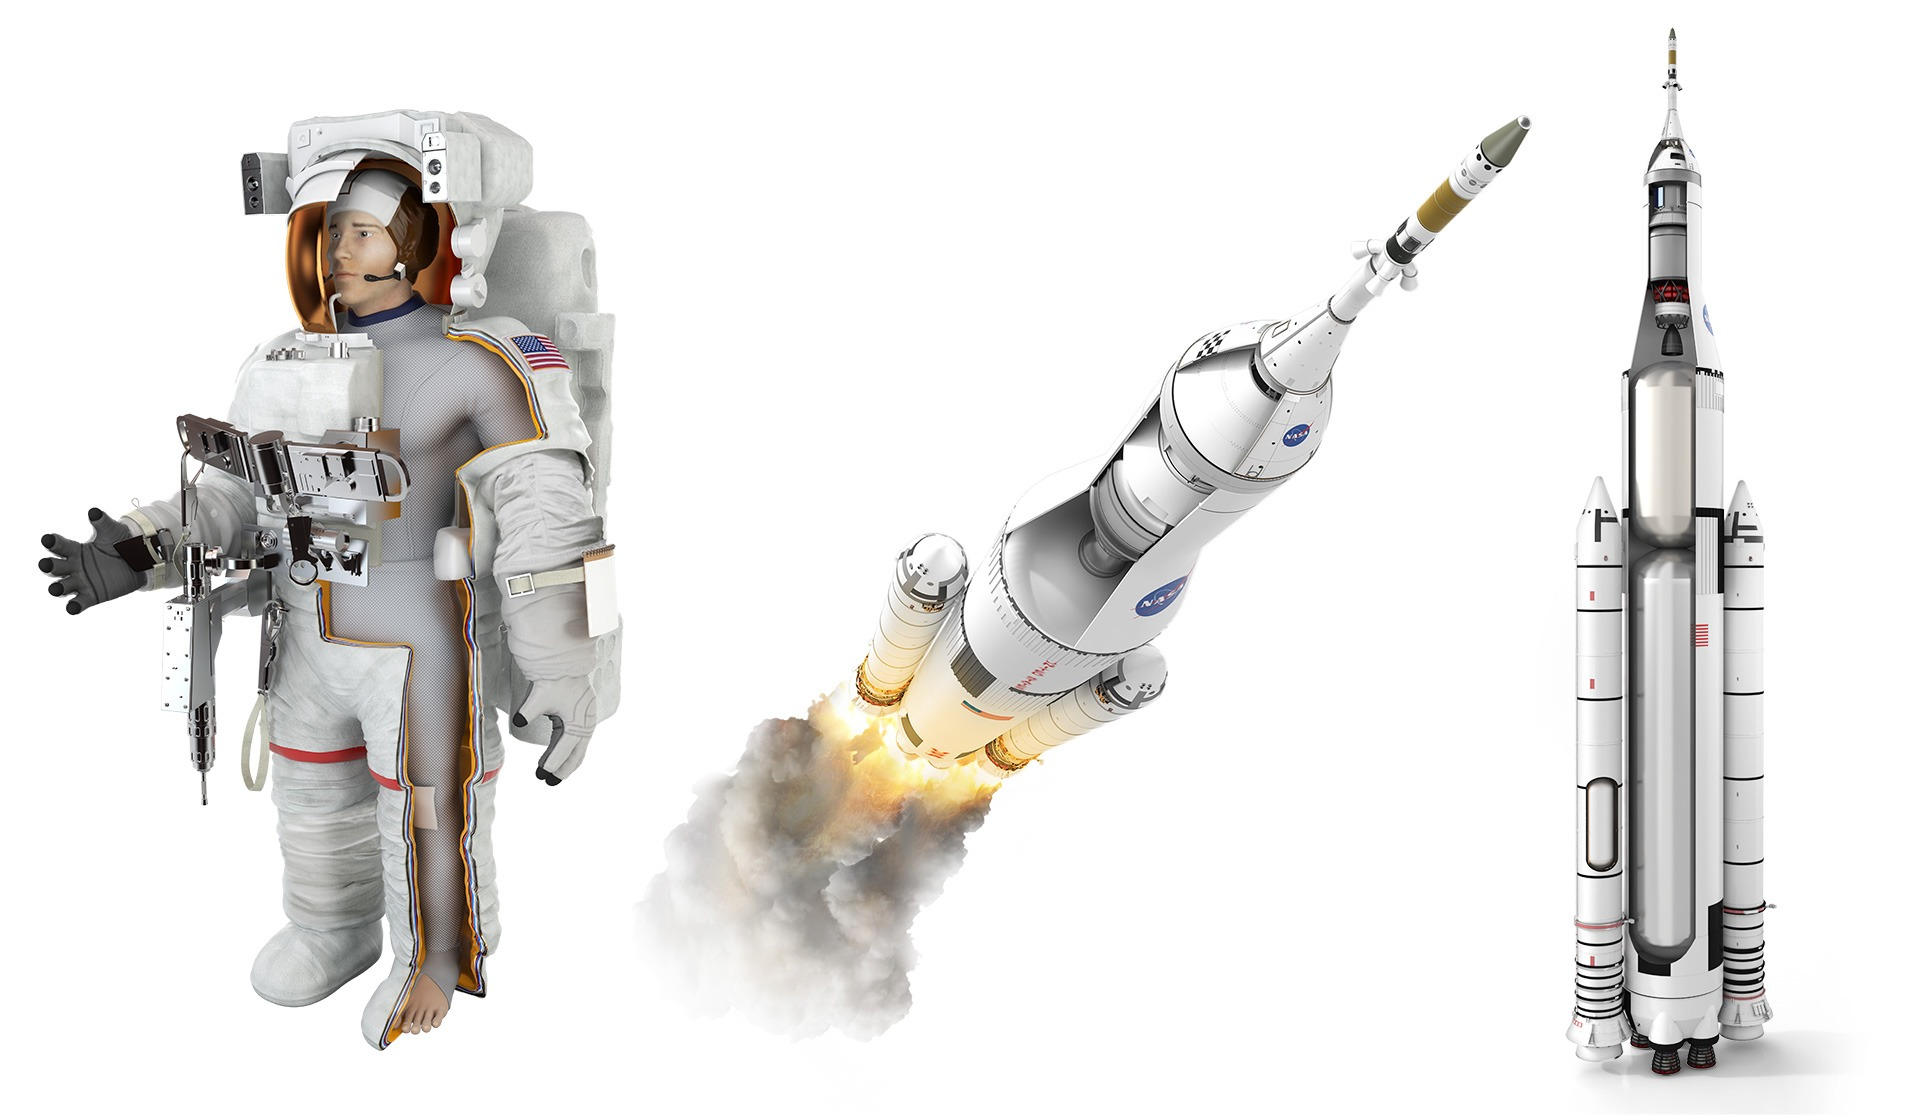 stas3dart-dorling-kindersley-space-book-apollo-spacesuit-image-rocket-gallery